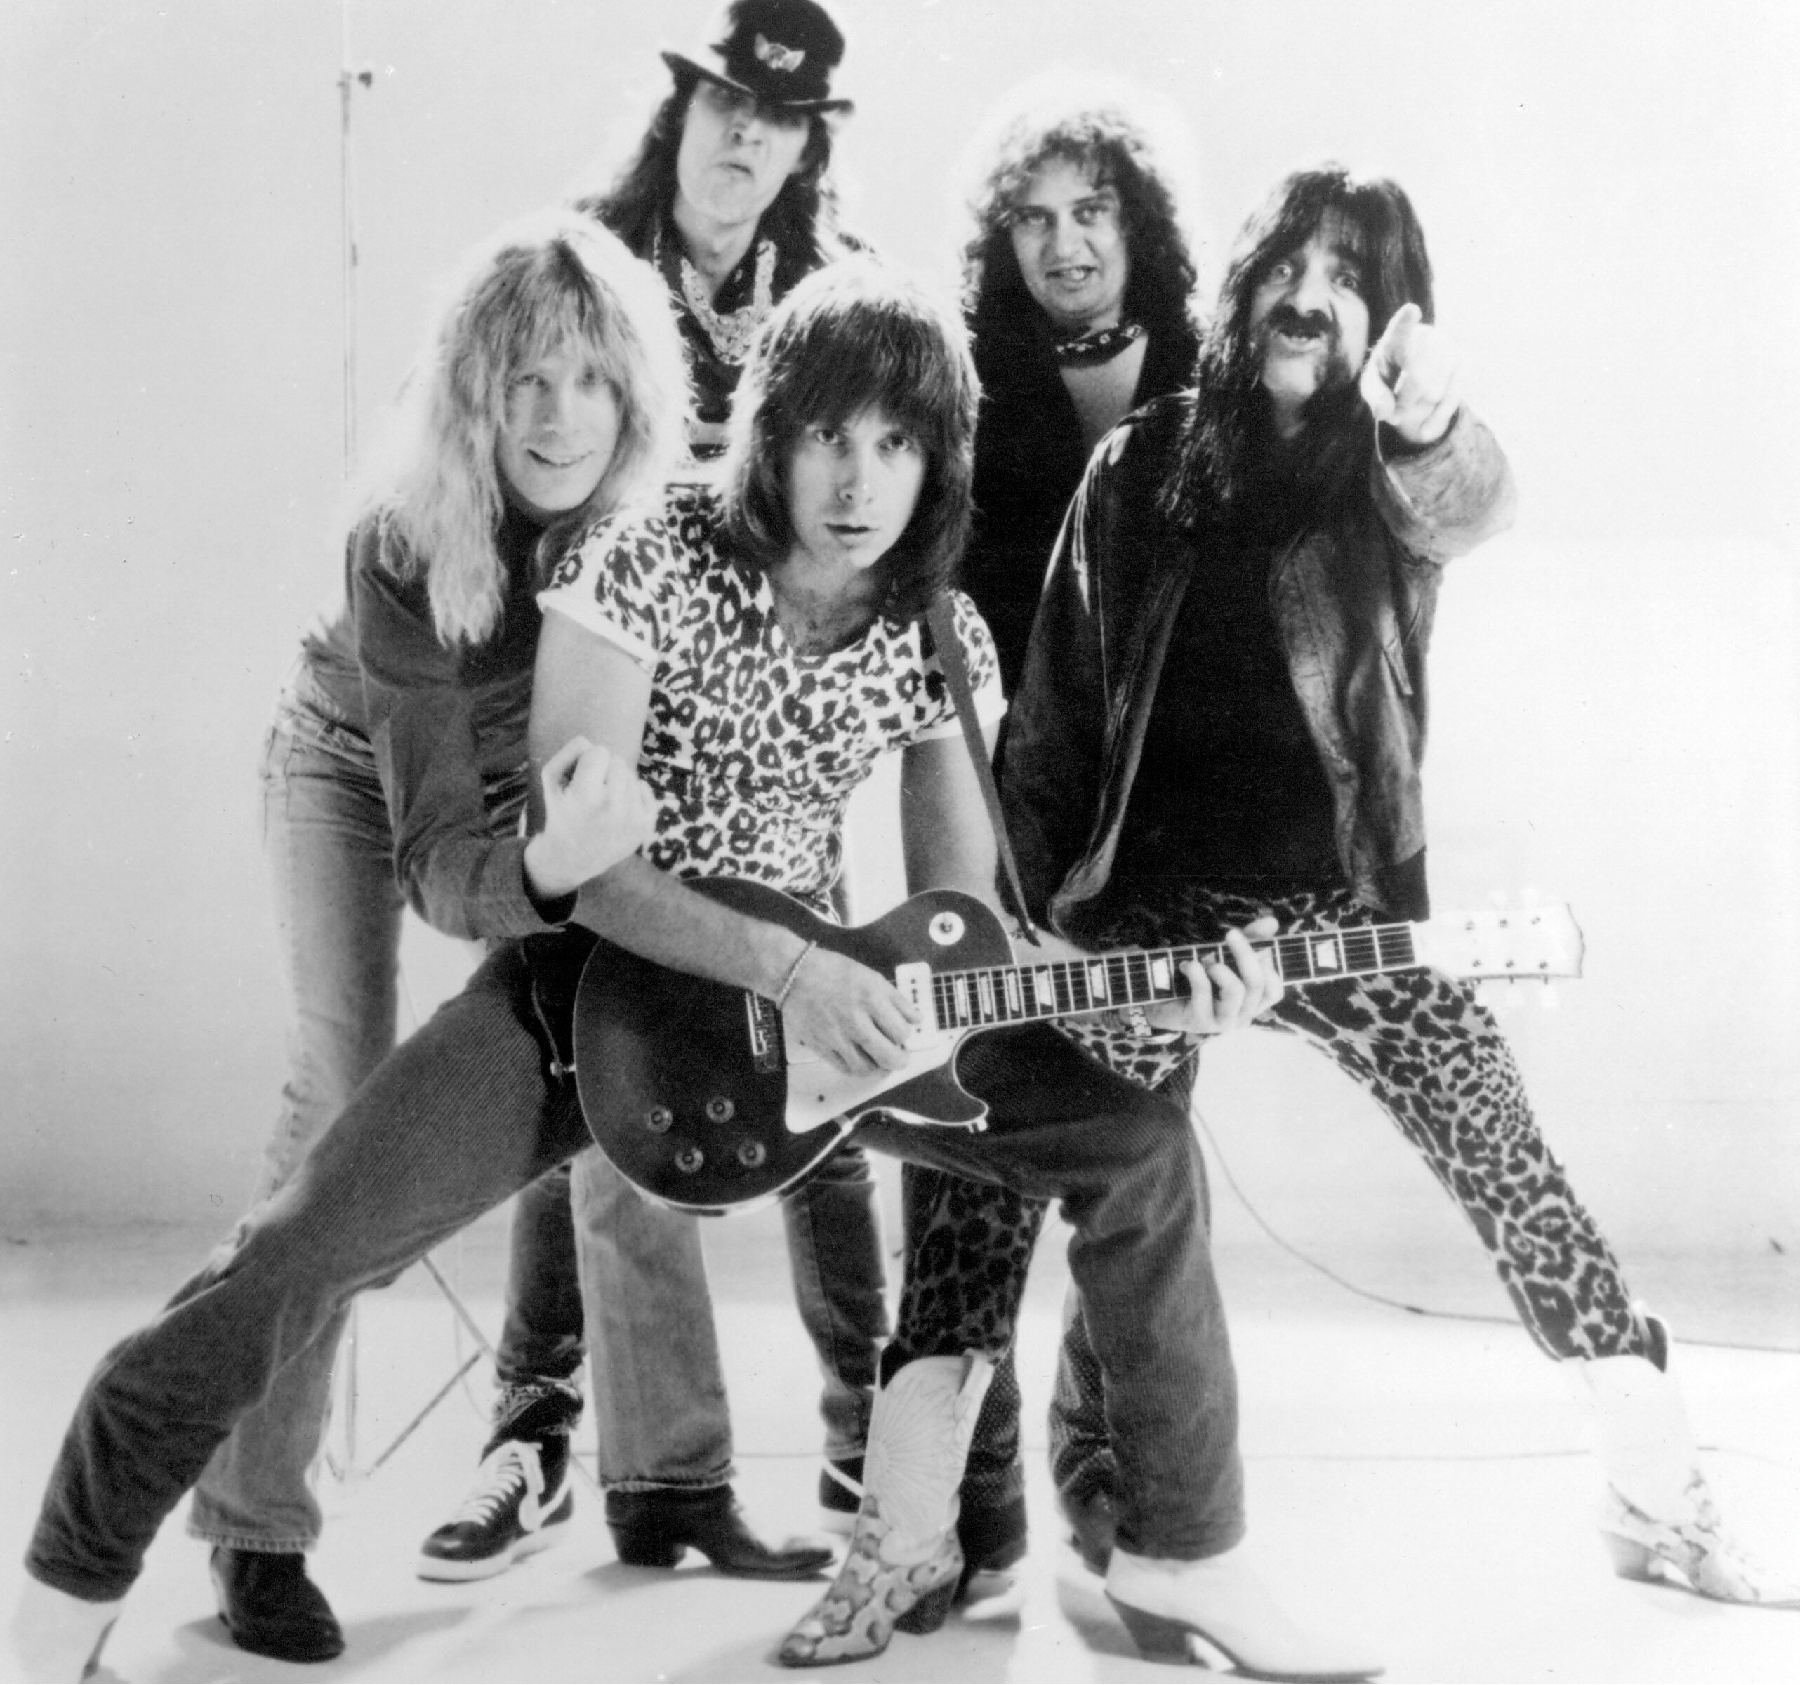 rs 28038 spinaltap 1800 1394048900 Tonight We're Gonna Rock You With 30 Facts About This Is Spinal Tap!